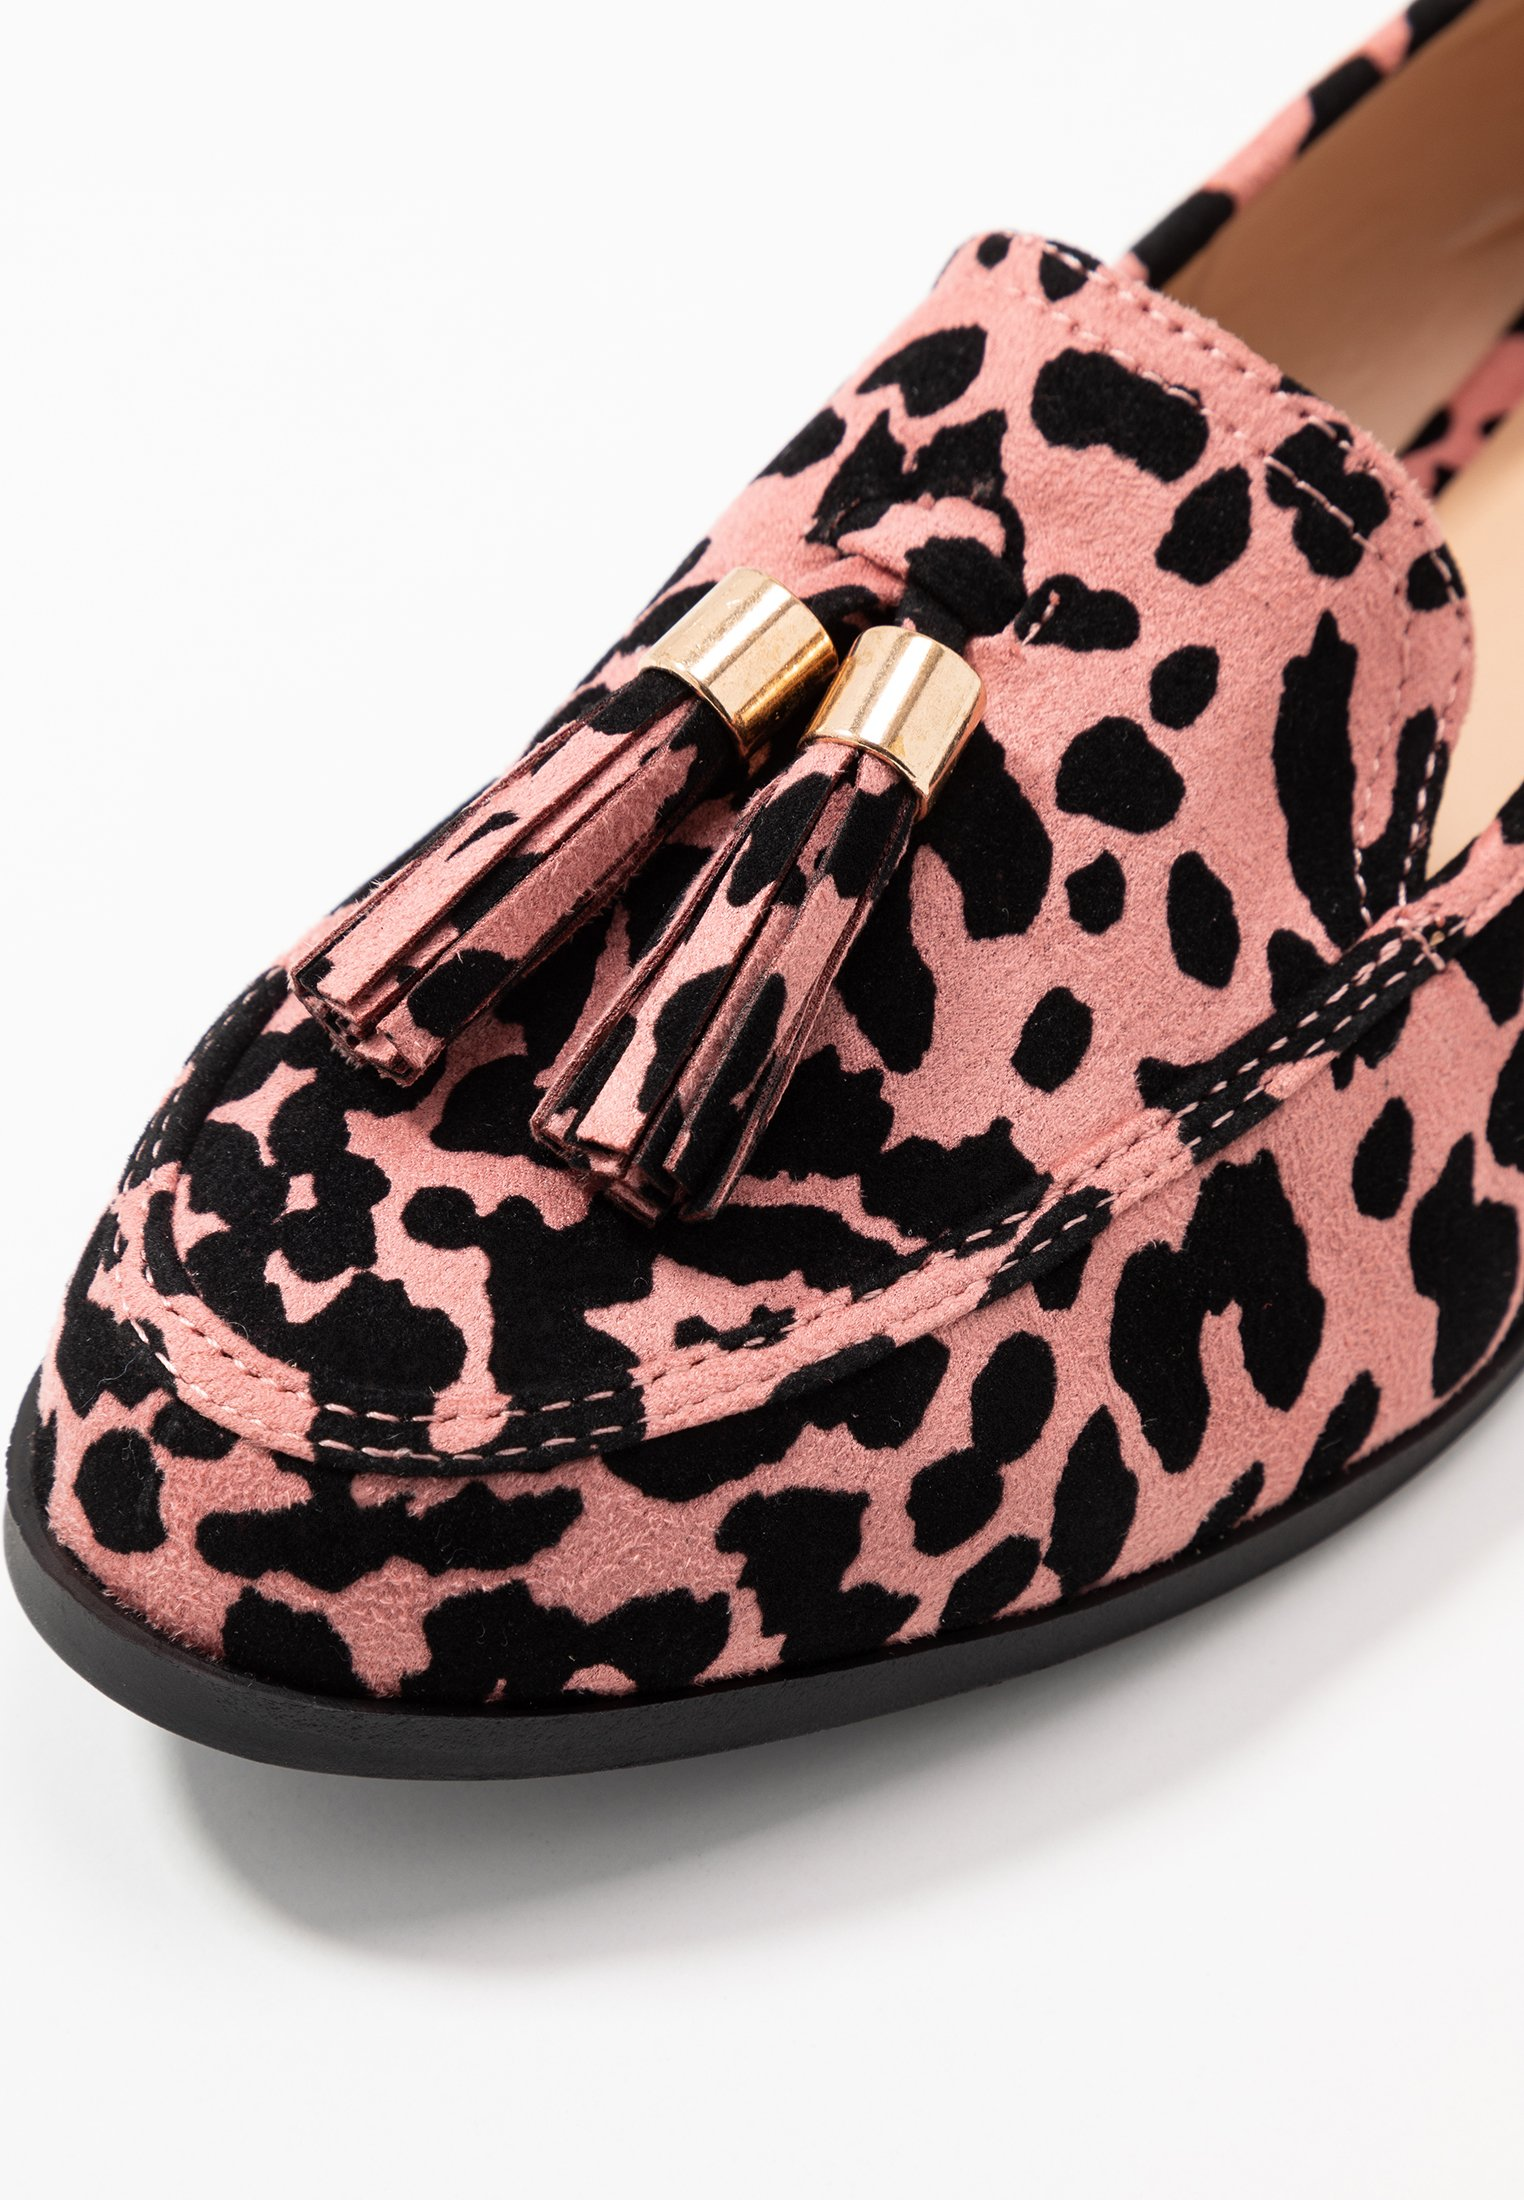 Lillie Lacci Senza LoaferScarpe Pink Perkins Dorothy rxBWdeCo